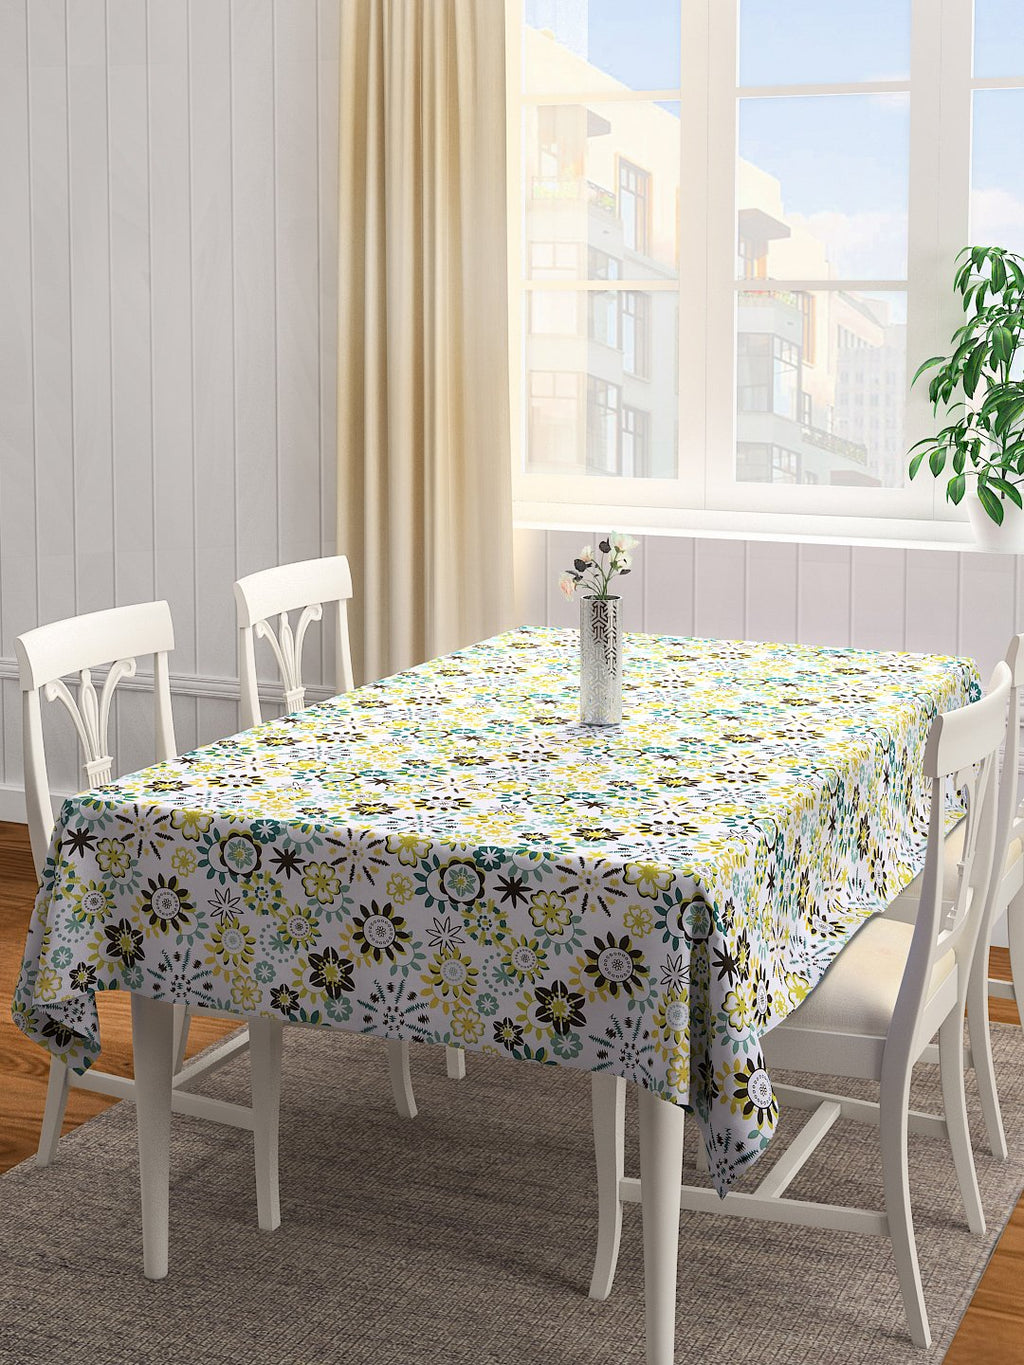 Handcrafted Flair Oasis Table Cover